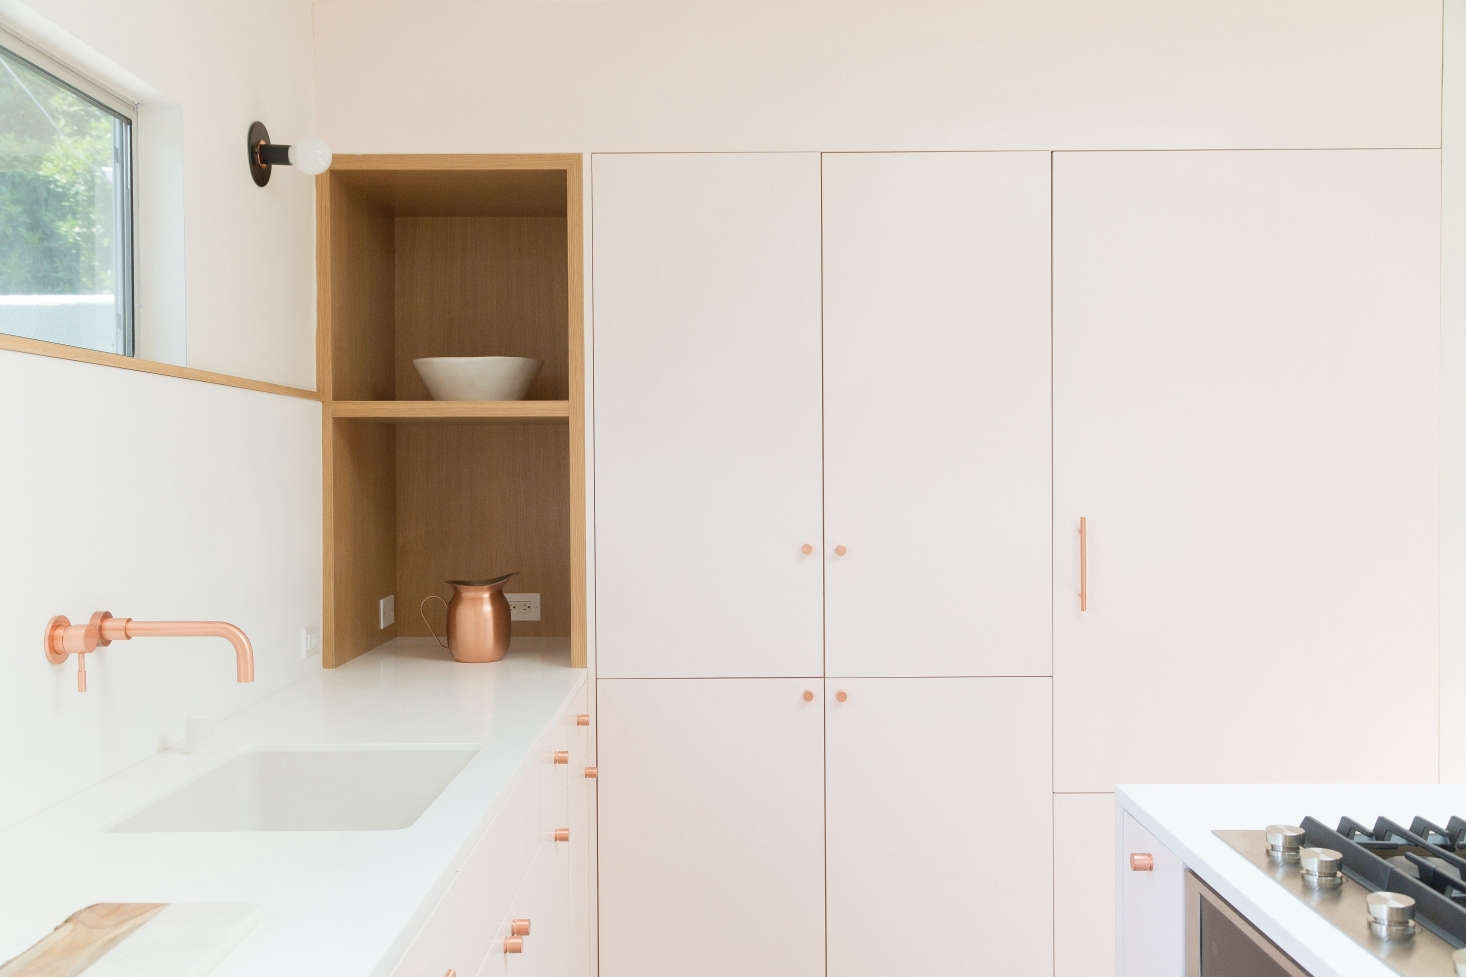 LA architects Annie Ritz and Daniel Rabin renovated their kitchen in Silver Lake to include a wall of cabinets painted pale pink; see more at Kitchen of the Week: Two Young Architects Think Pink in LA. Photography by Lauren Moore, courtesy of Studio Ritz Rabin.